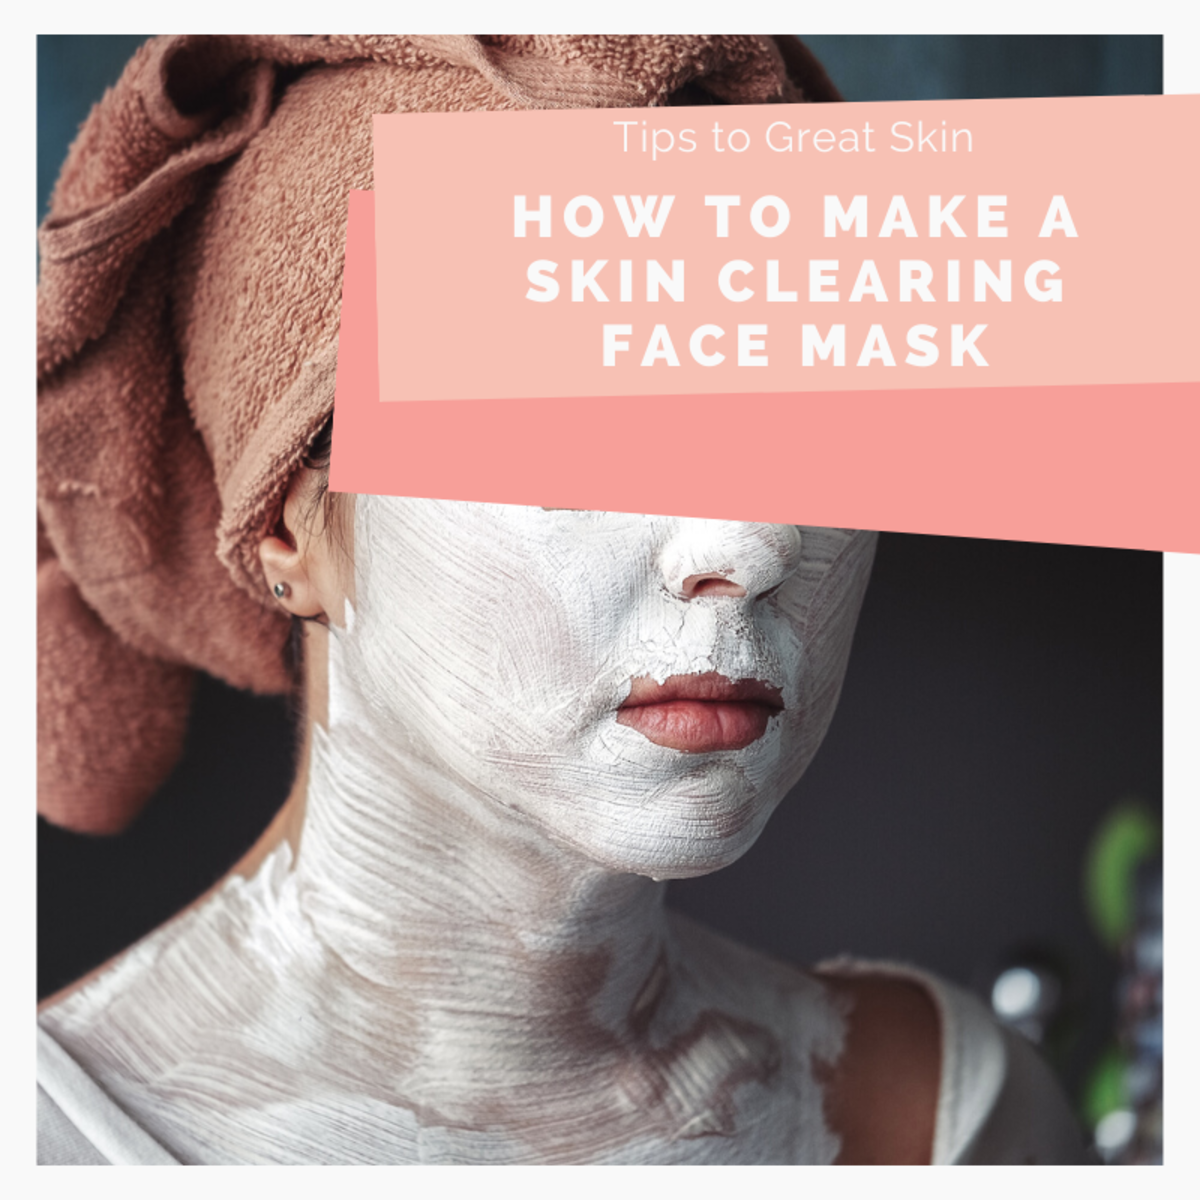 How to Make a Skin Clearing Face Mask